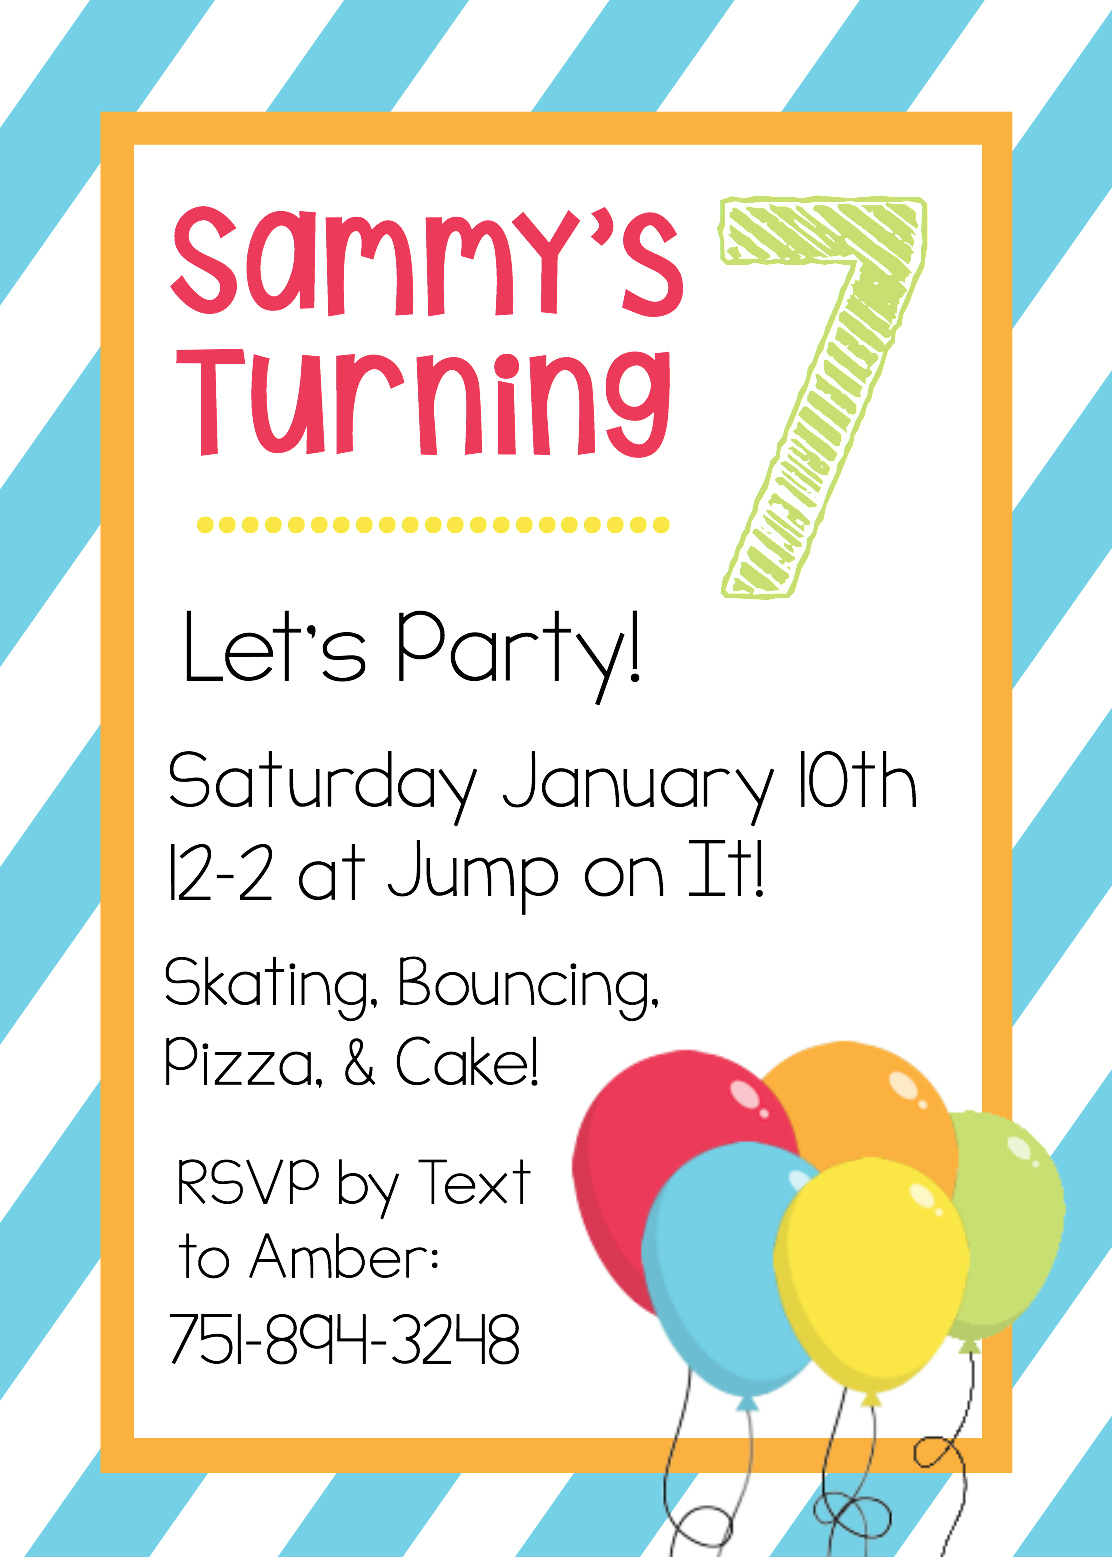 Printable Birthday Invitation Templates - Birthday invitation email templates free